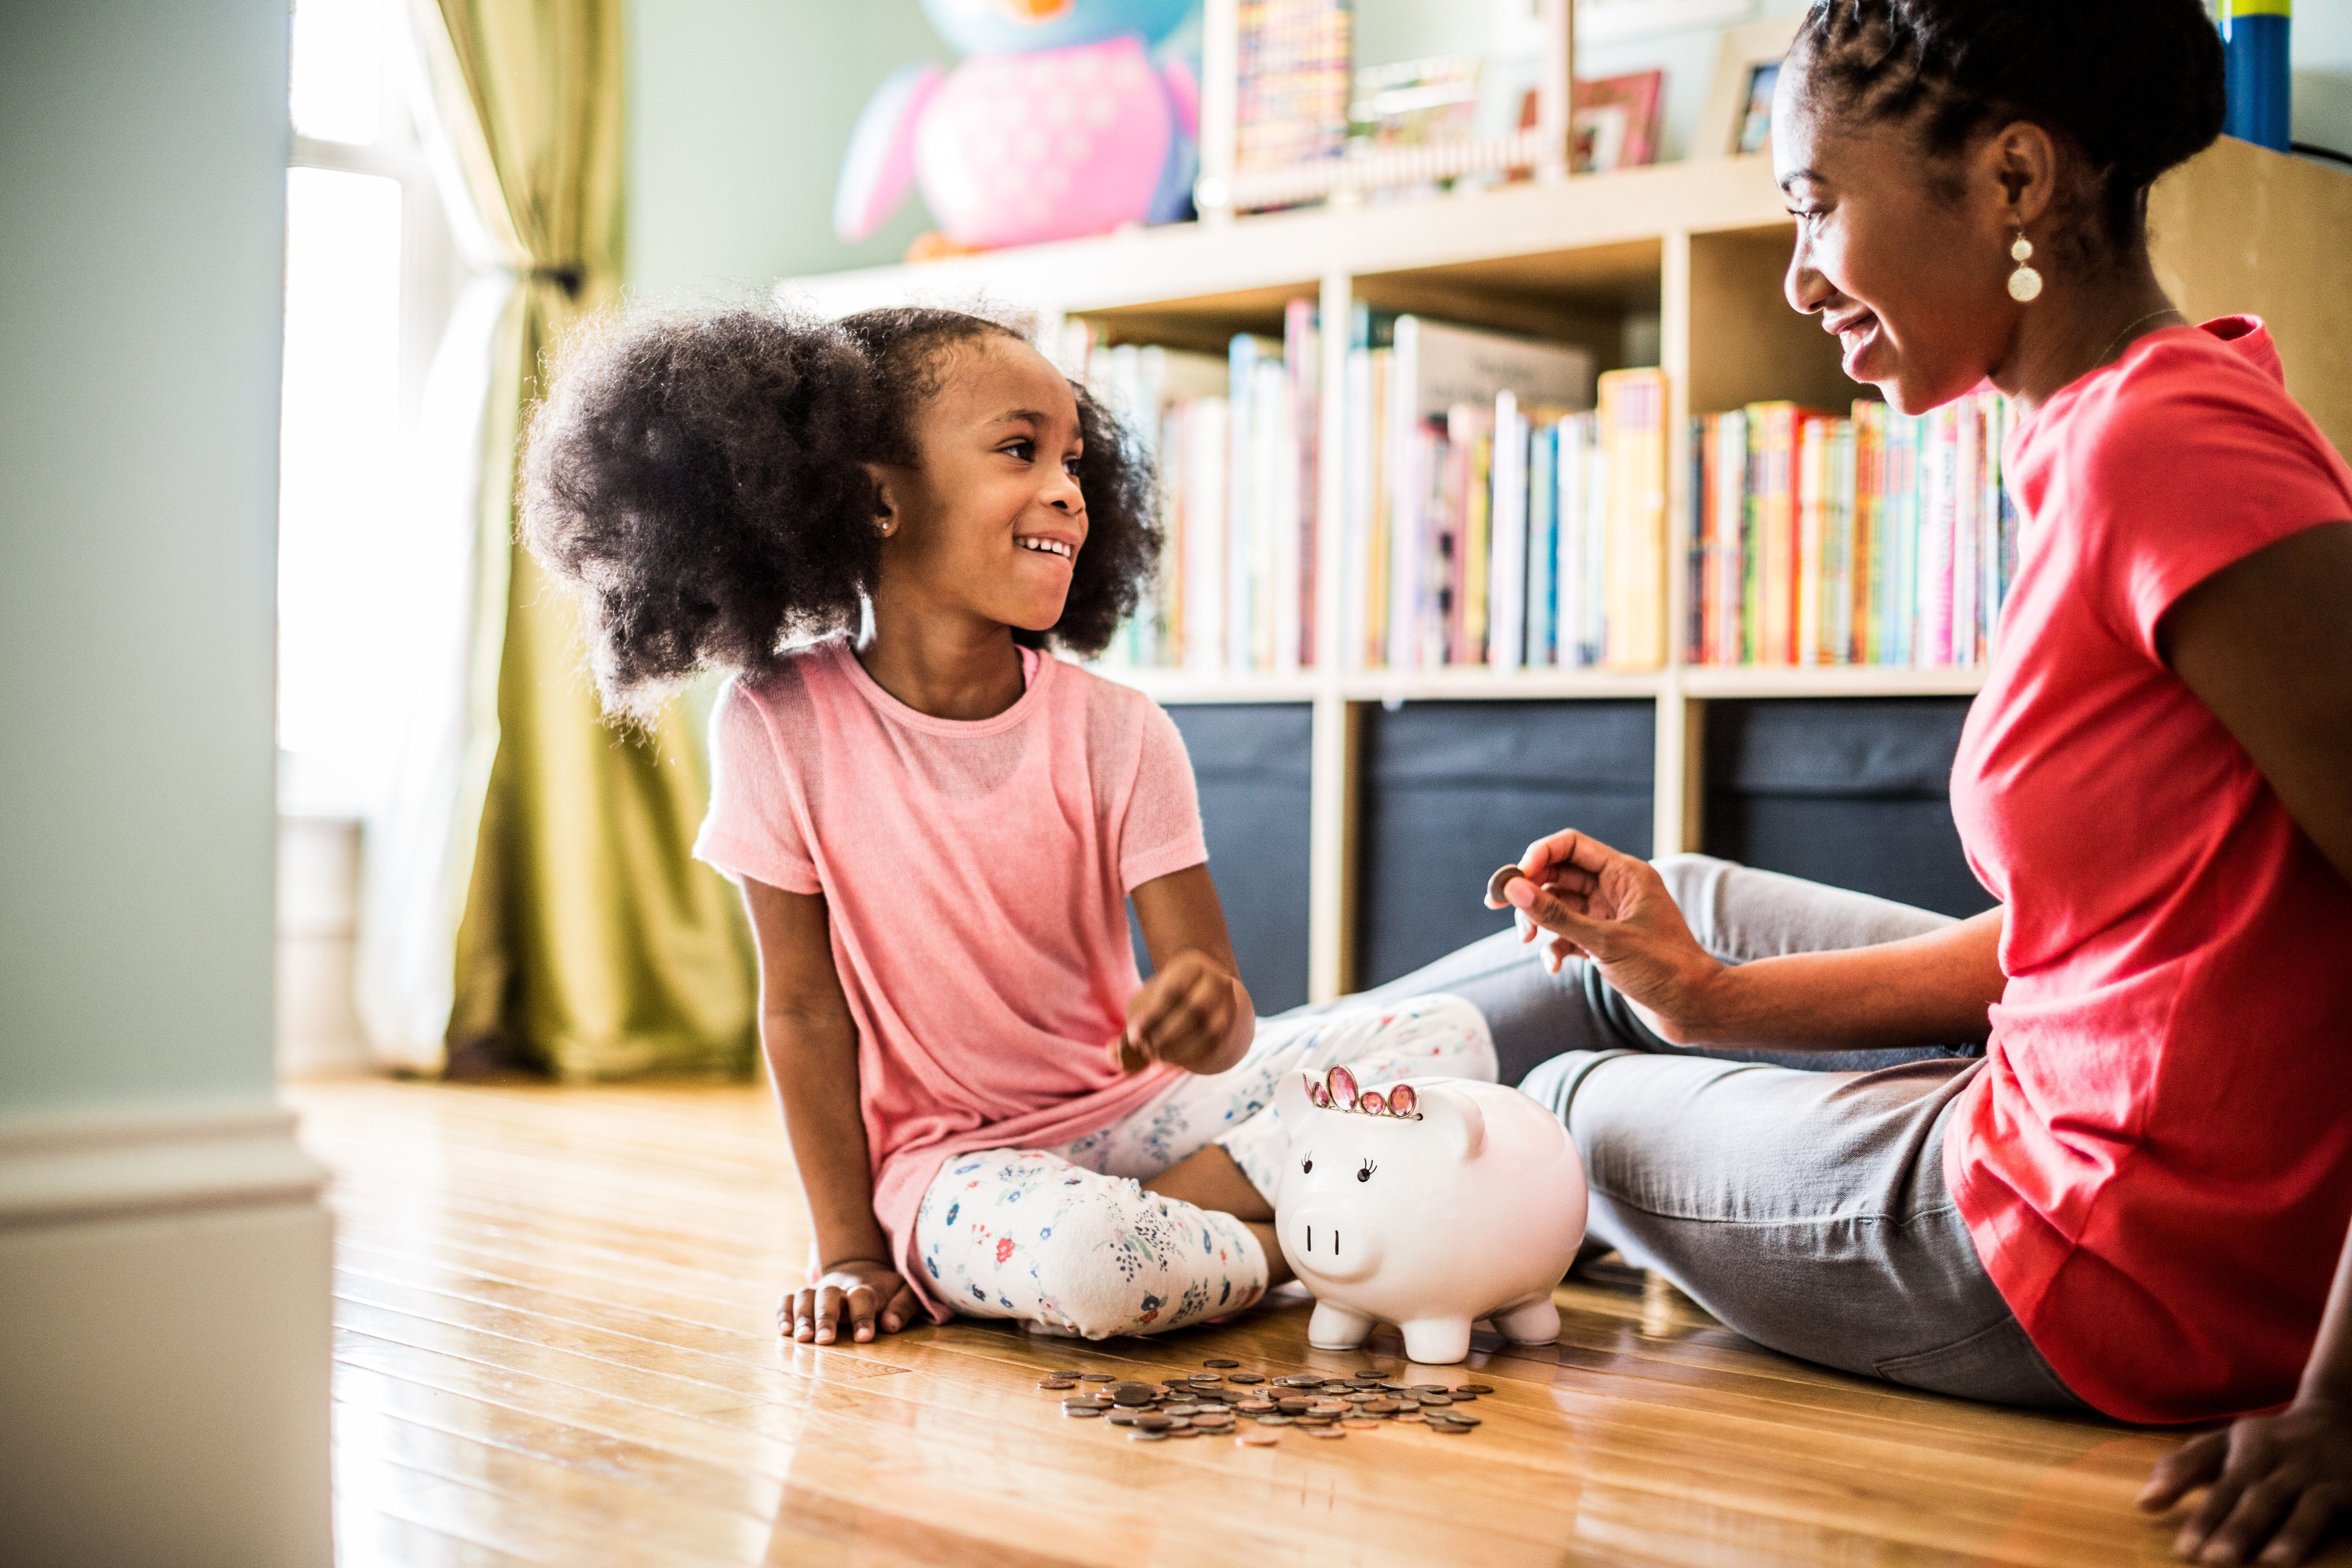 Children's Average Weekly Pocket Money Is Now £11.20 A